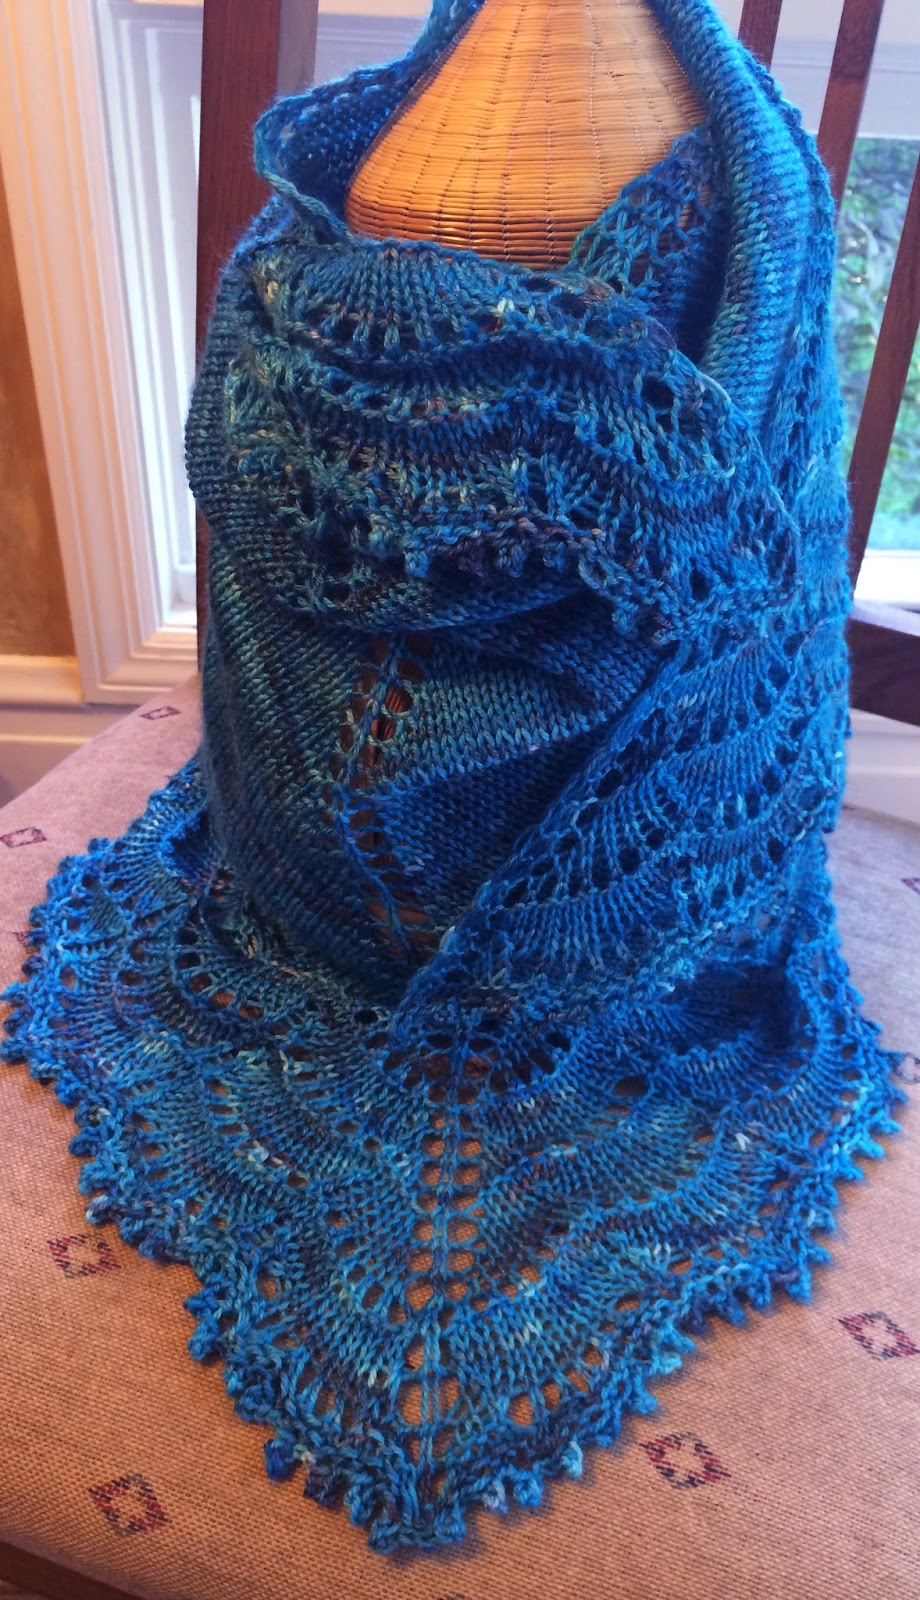 Holden Shawlette from The Artful Yarn - Done! 15